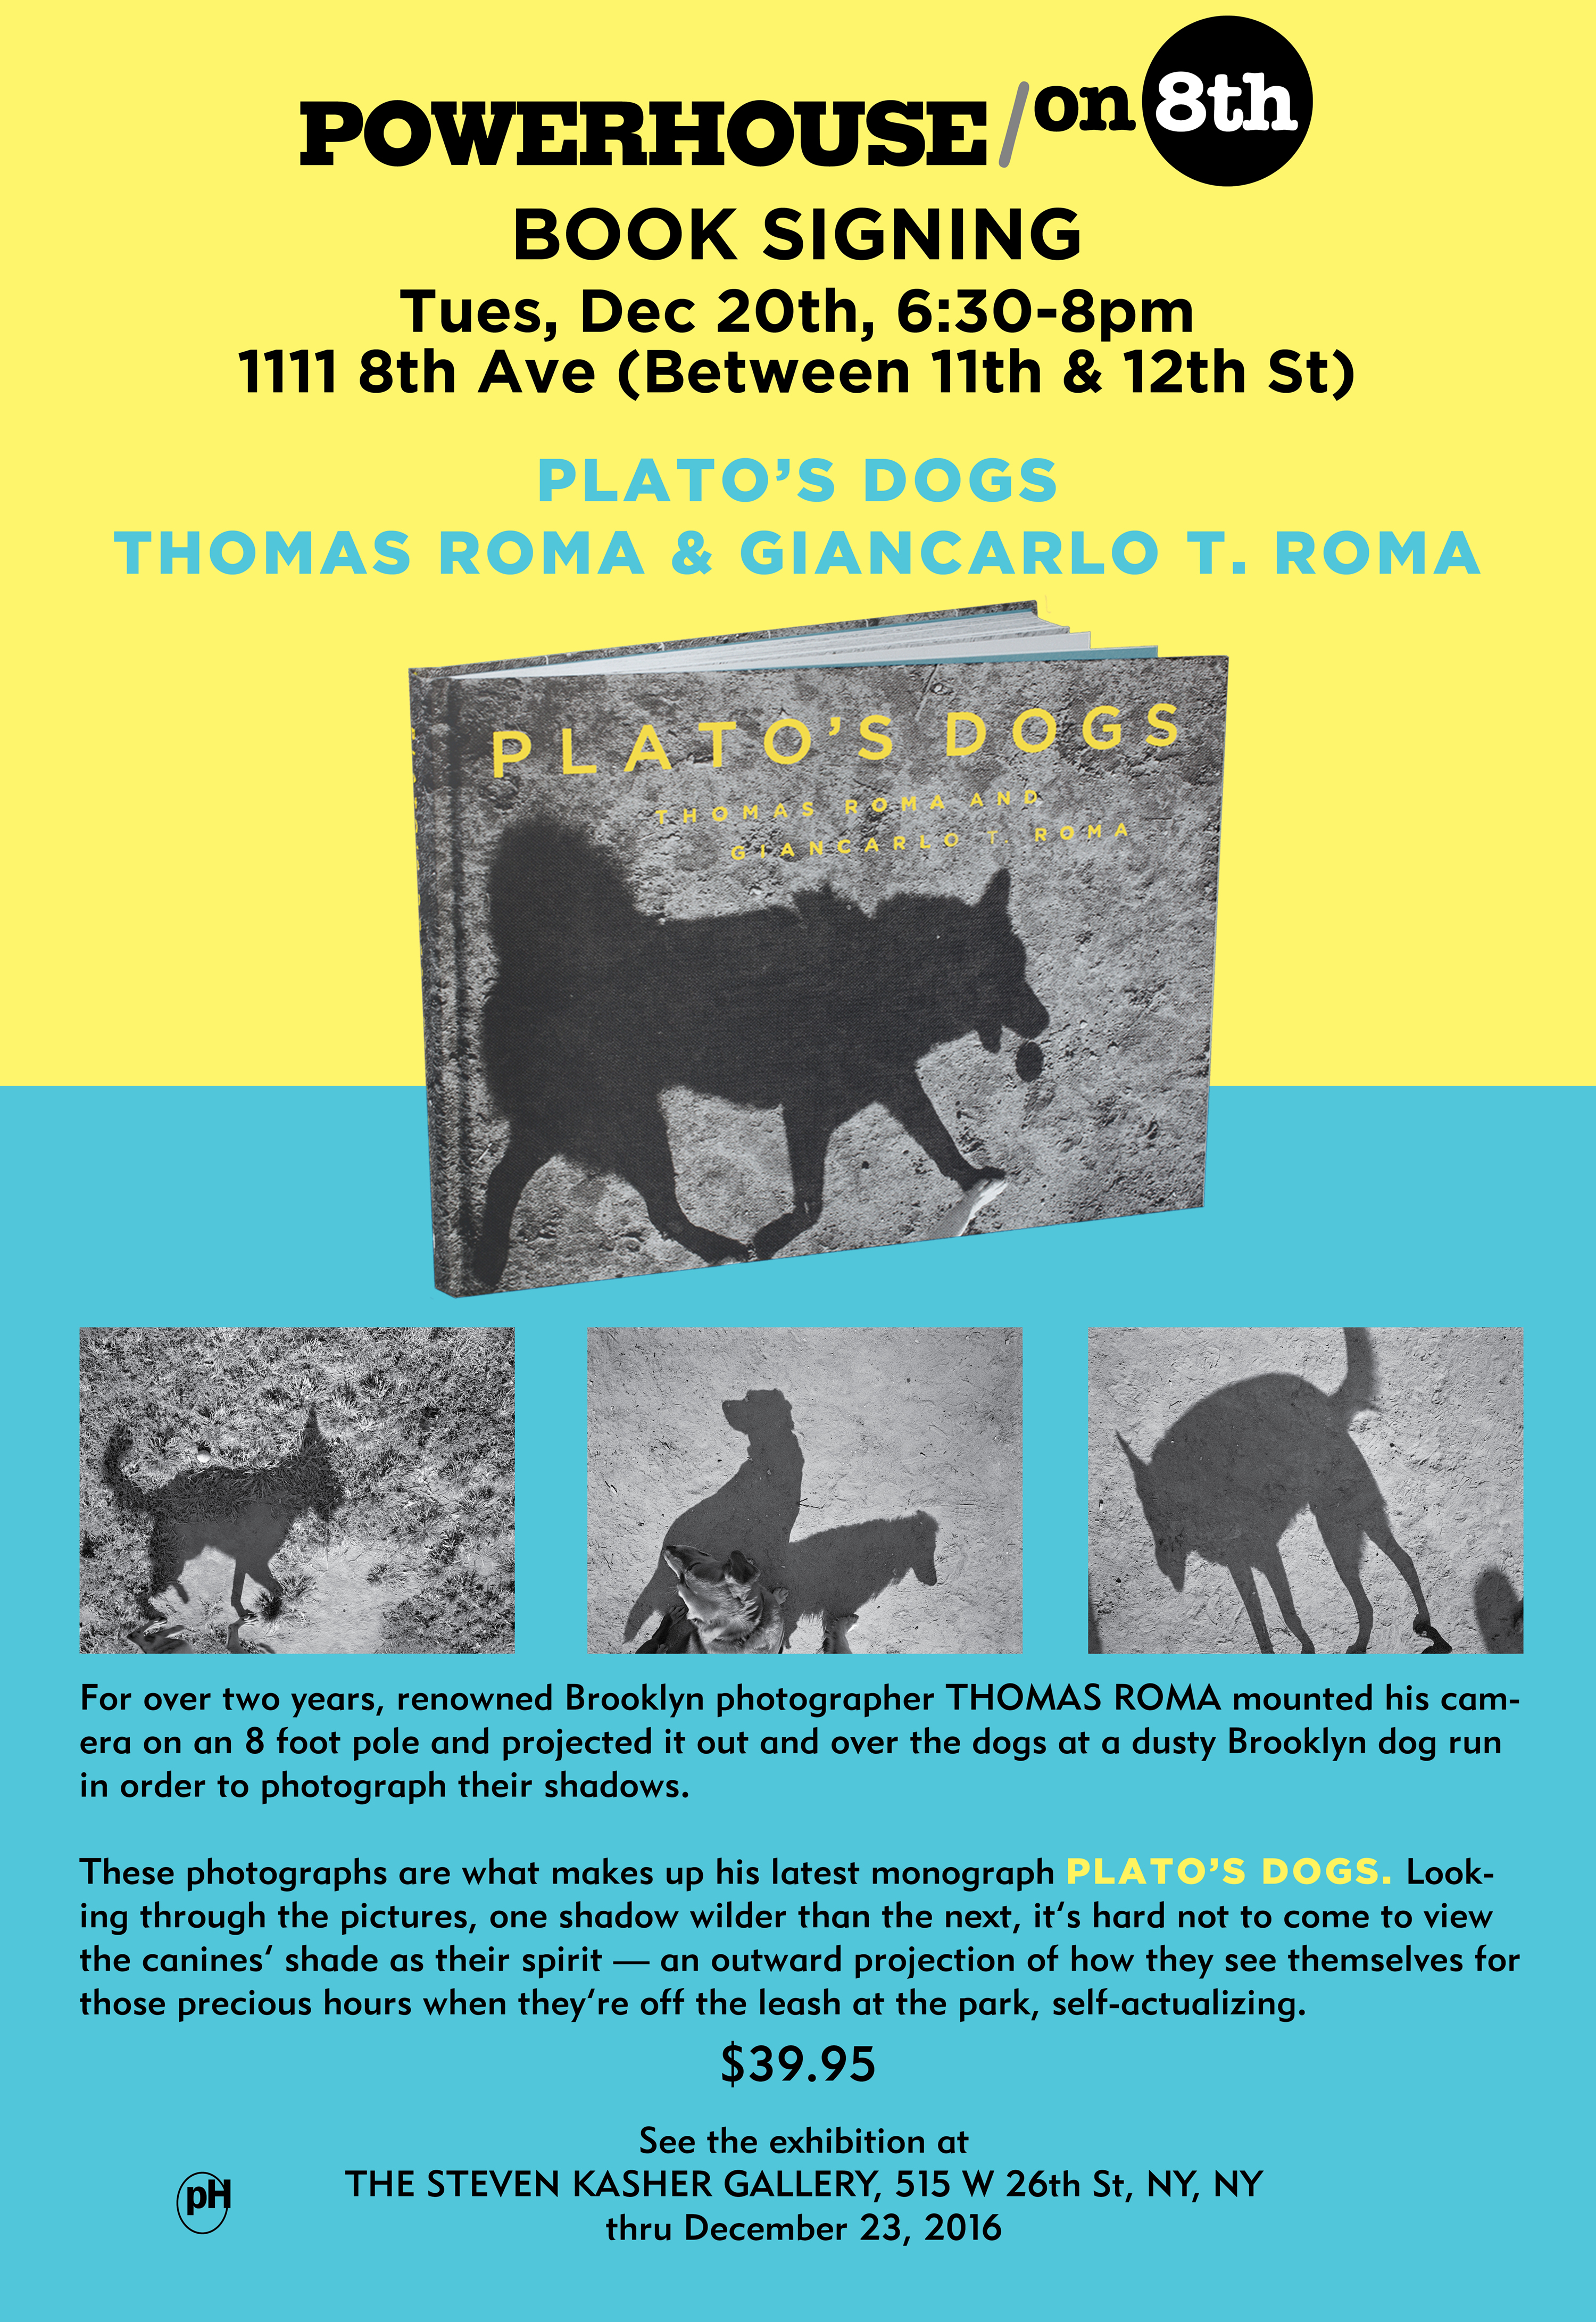 Book Signing: Plato's Dogs by Thomas Roma and Giancarlo Roma